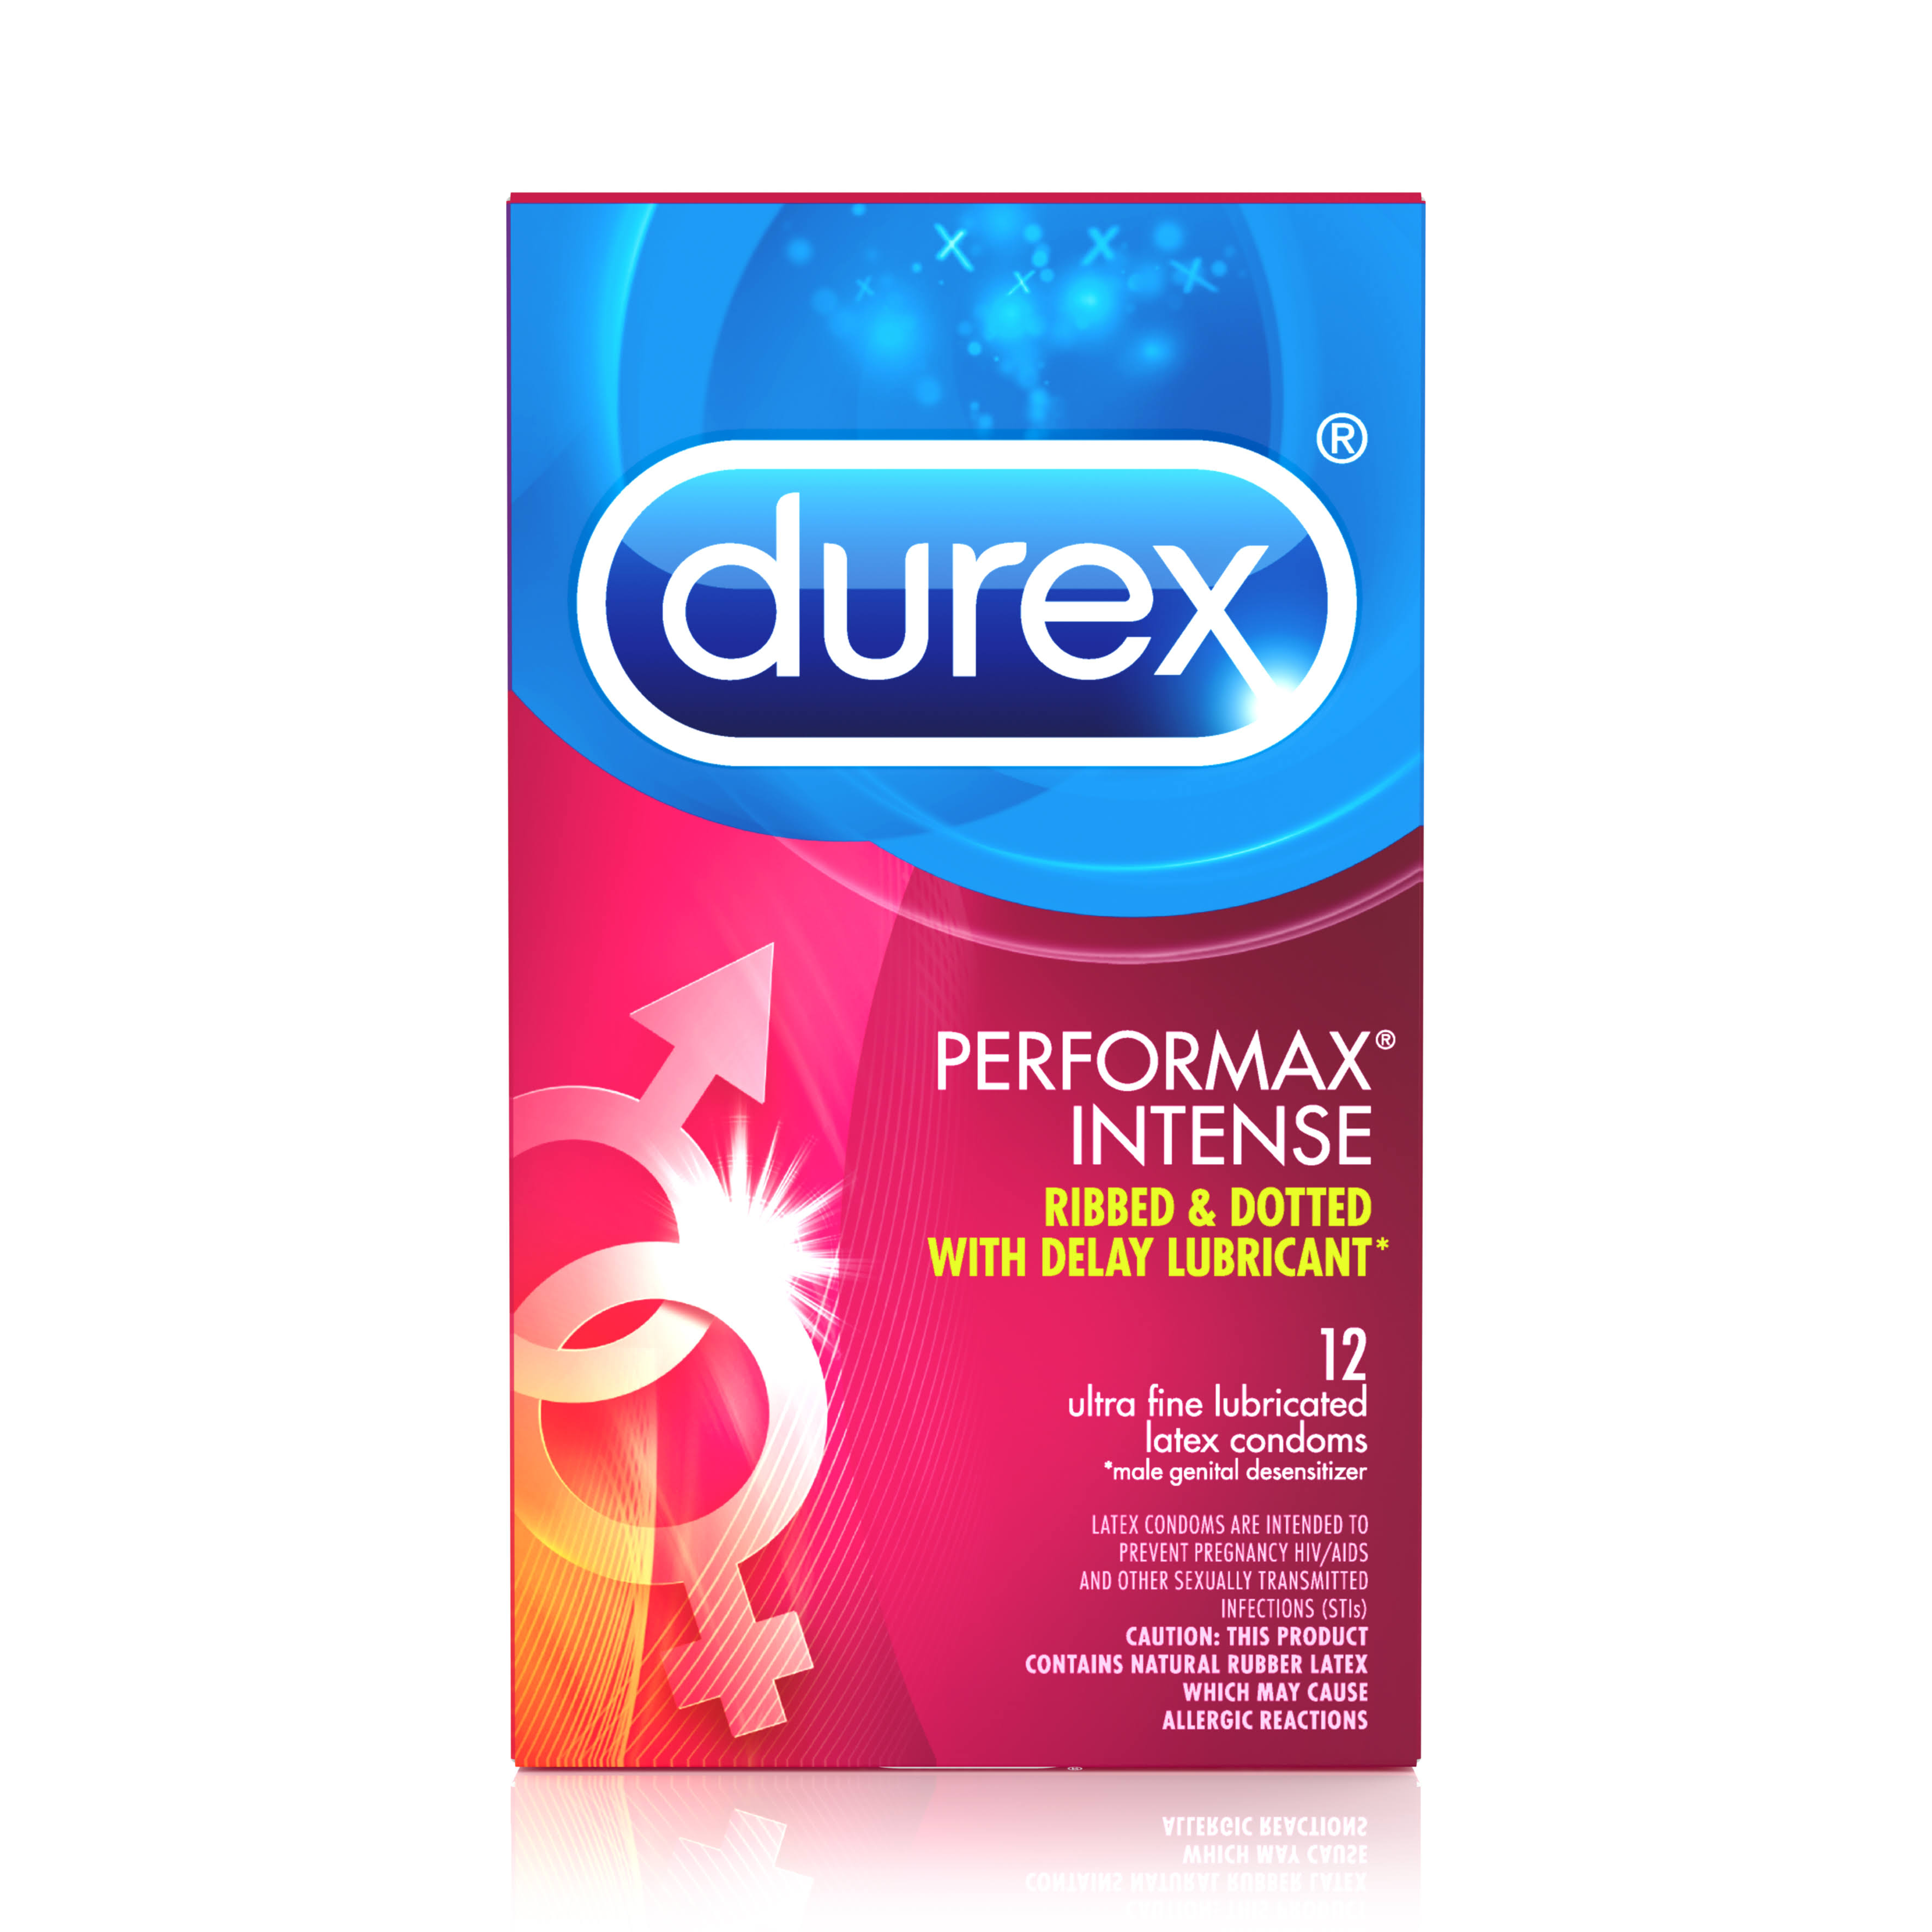 Durex Performax Intense Ultra Fine Latex Condoms - Ribbed and Dotted, 12ct